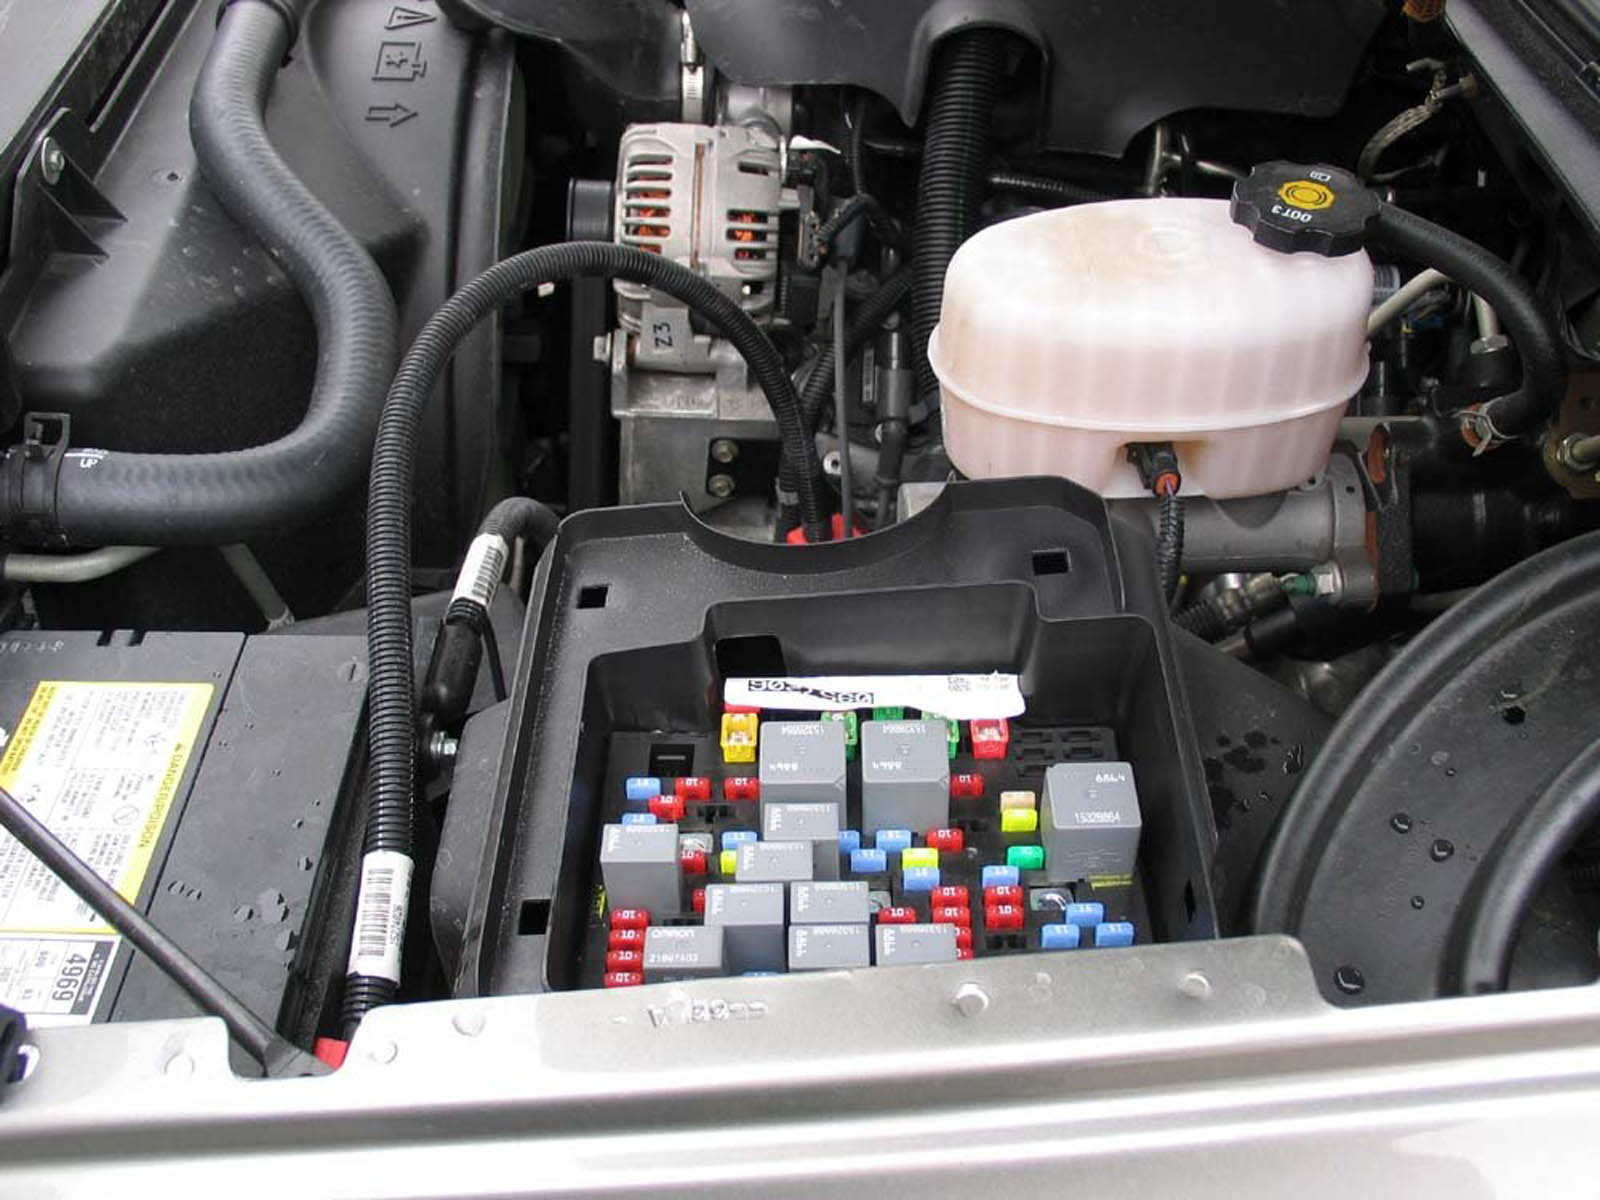 MMMay 27 Fuse Box 04 69845 chevrolet silverado gmt800 1999 2006 fuse box diagram chevroletforum 2003 chevy silverado fuse box diagram at nearapp.co